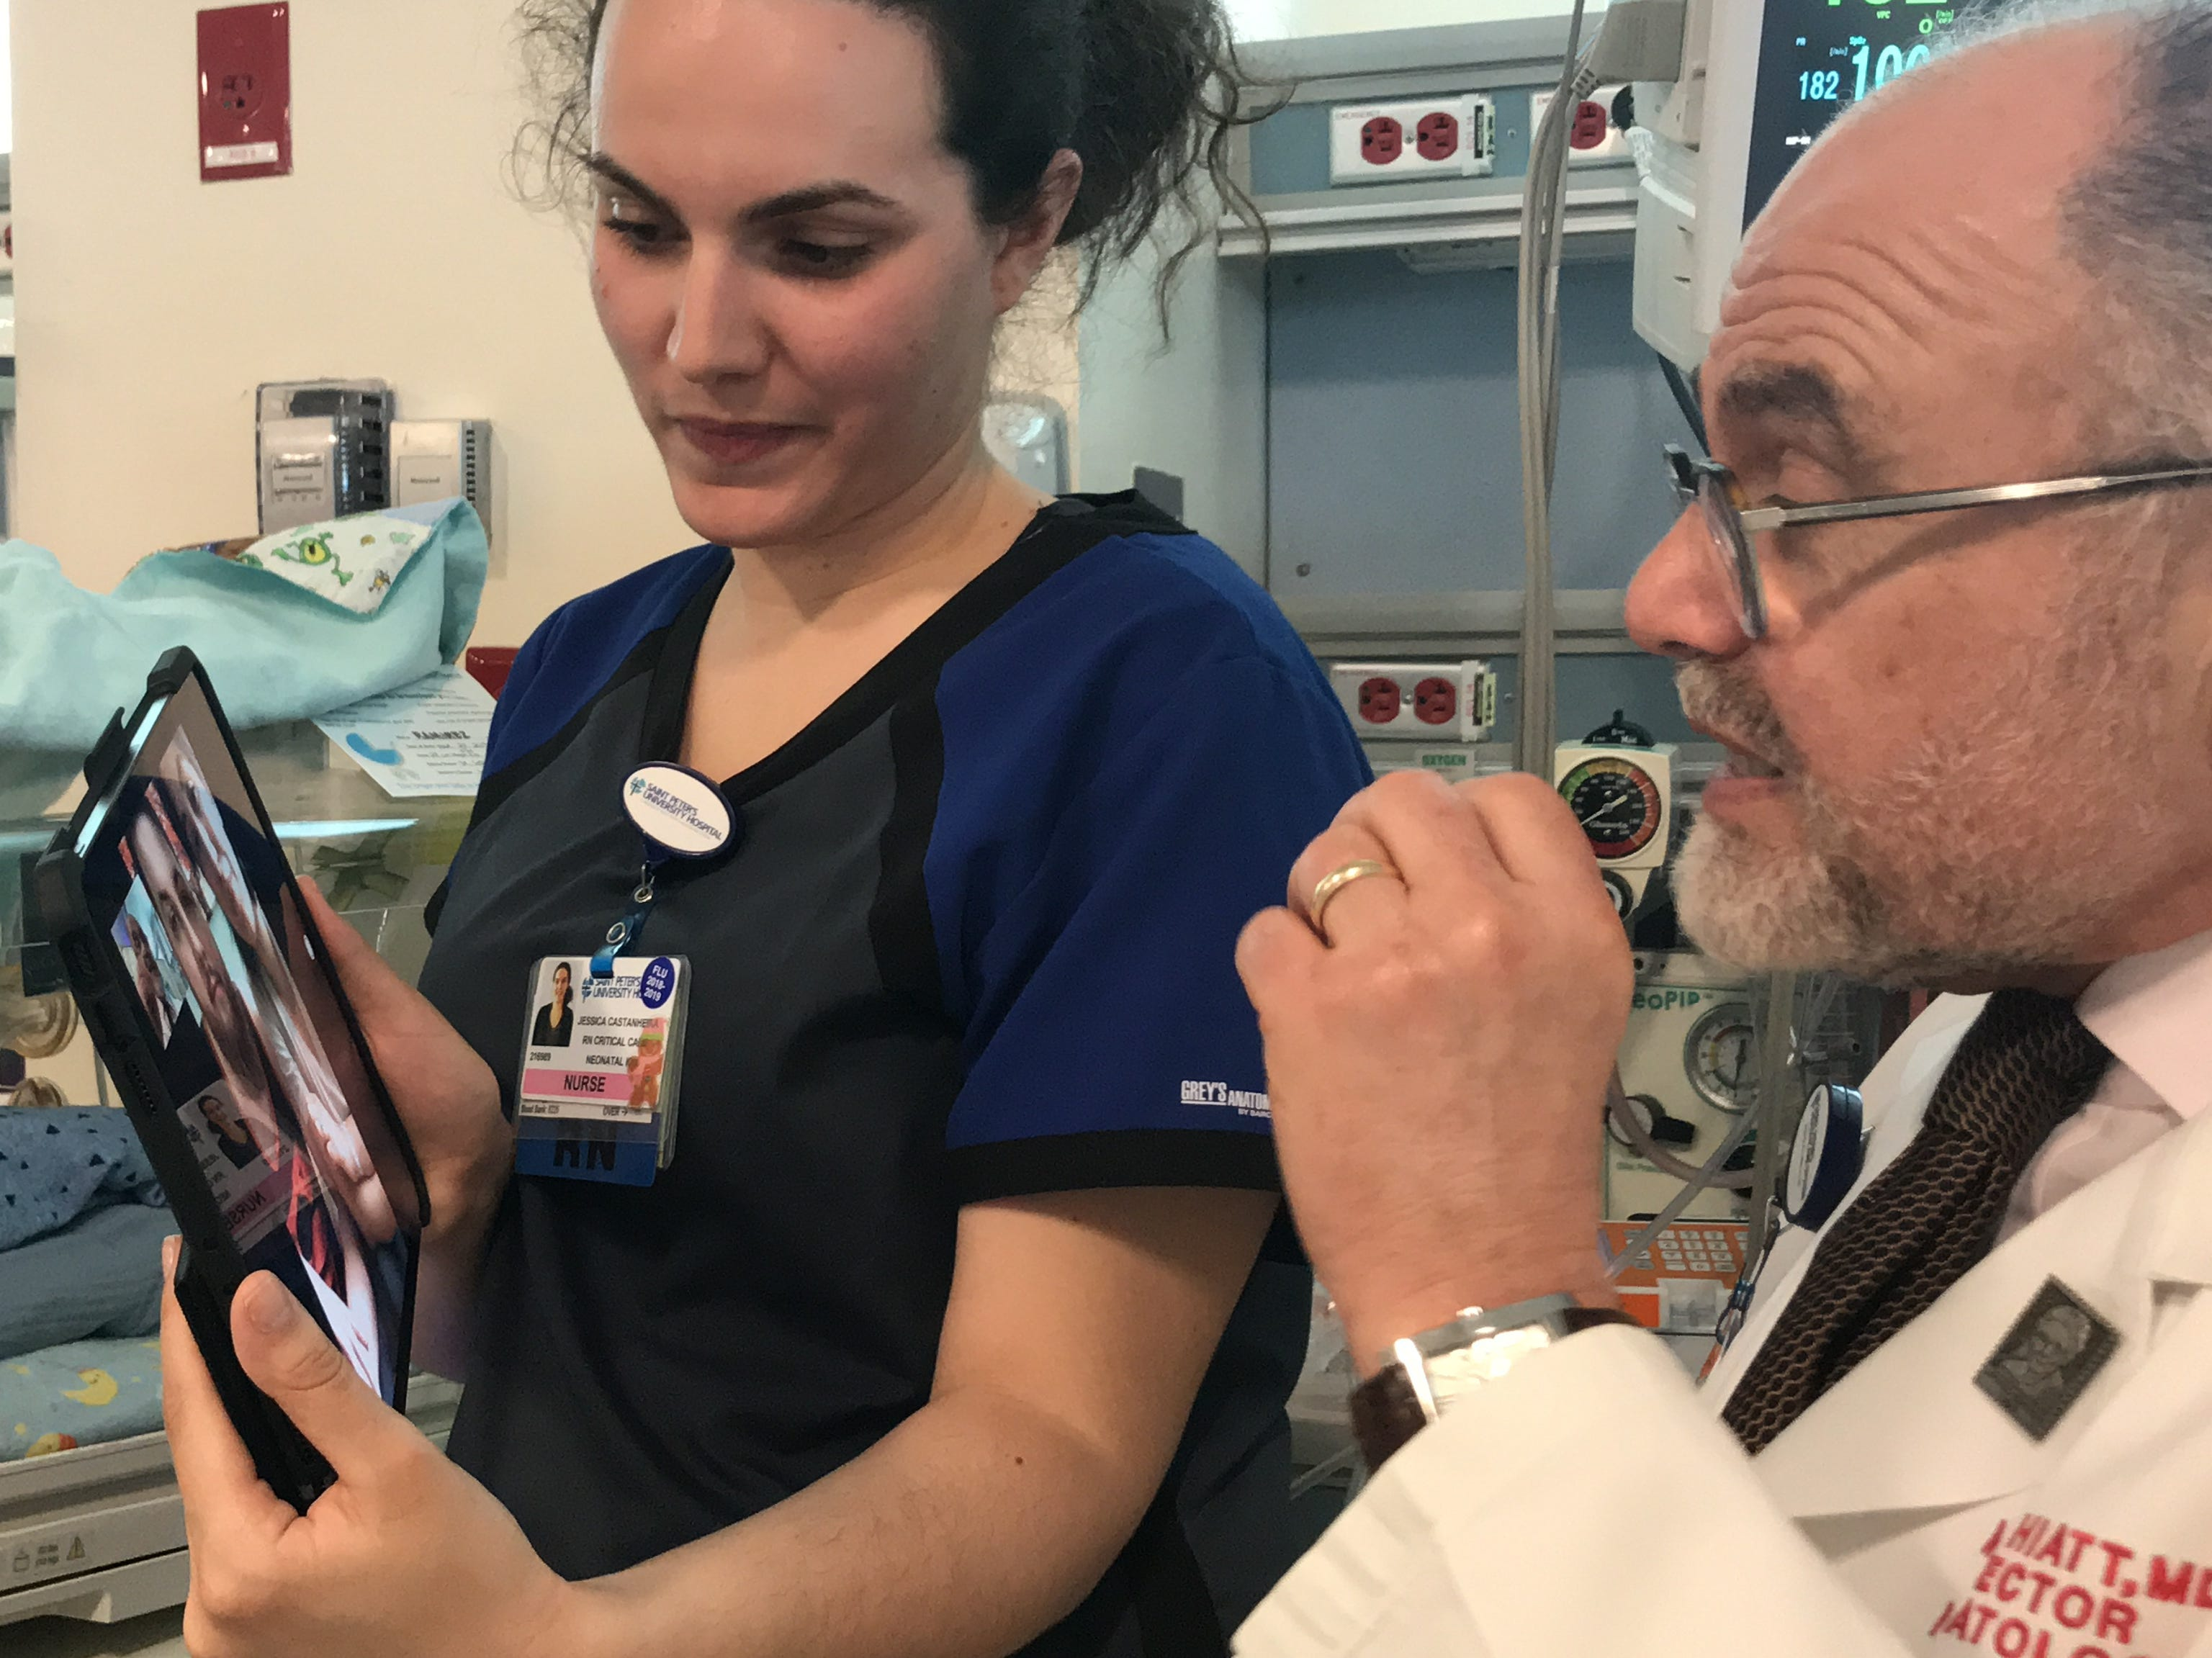 Dr. Mark Hiatt, chief of Neonatology at The Children's Hospital at Saint Peter's University Hospital in New Brunswick, and Neonatal Critical Care Nurse Jessica Castanheira, here with newborn Joseph Nardone Jr. of Rahway, demonstrate the recently launched daily FaceTime program in the Neonatal Intensive Care Unit (NICU). The first-of-its-kind in the state, the program delivers a liveaudio and visual feed to parents whose infants need specialized long-term care.